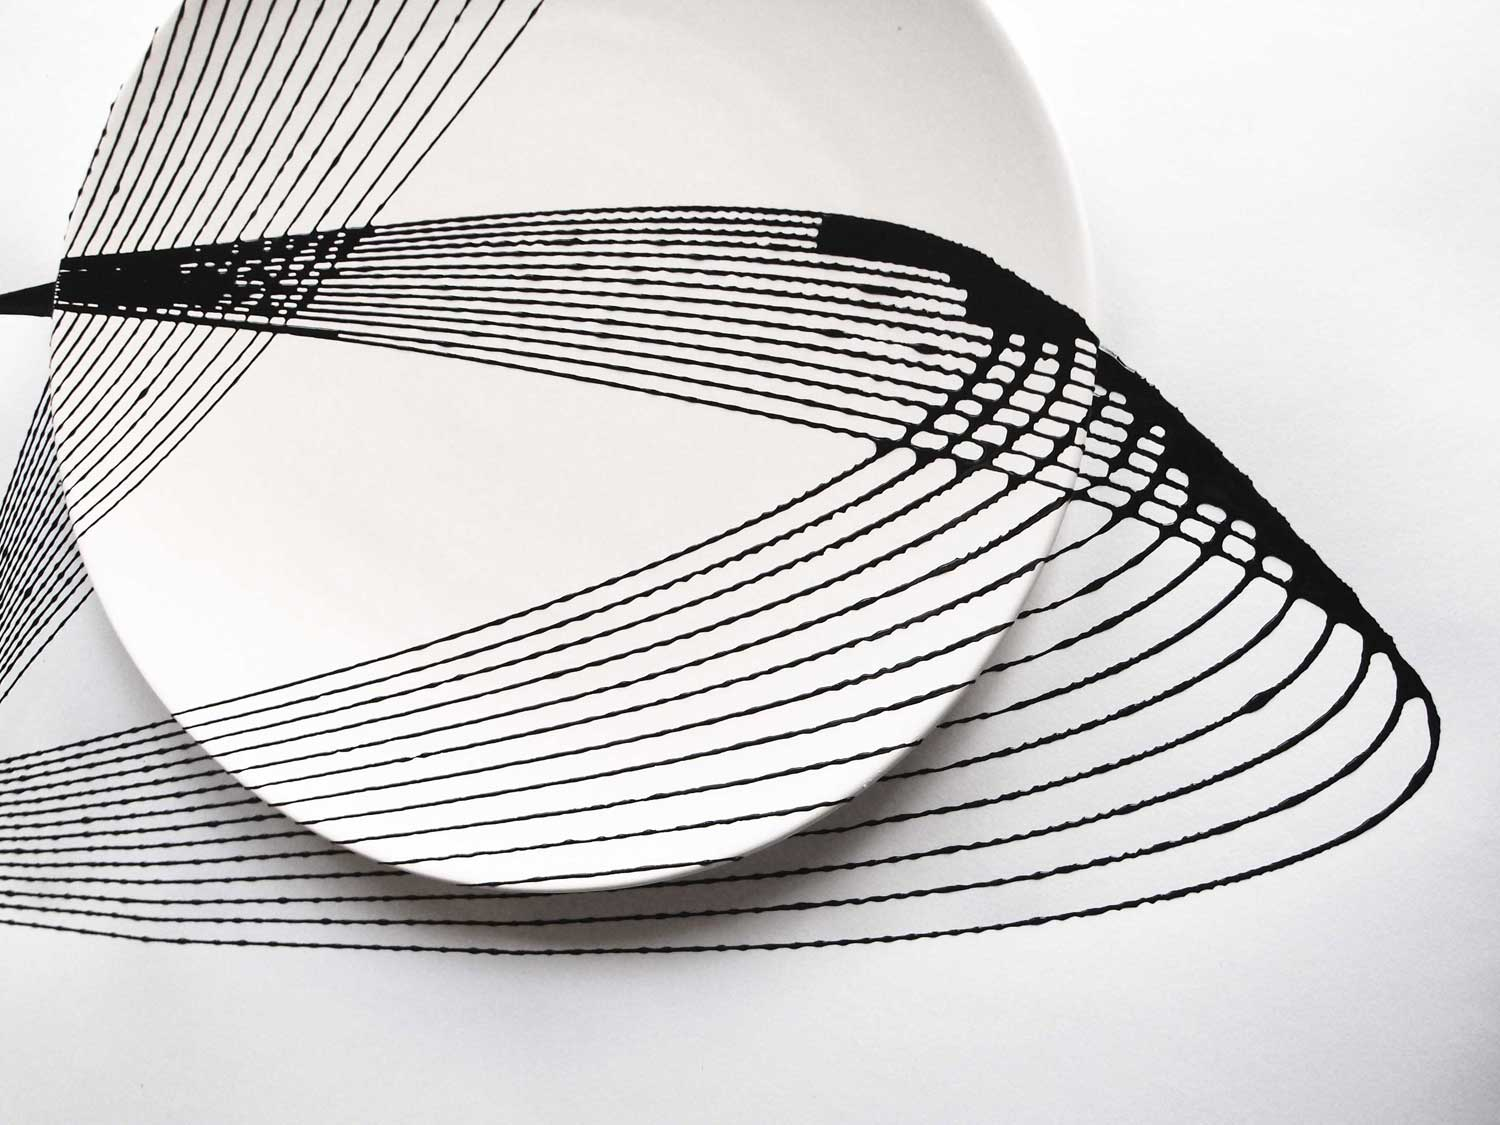 Oscillation Plates D. Derksen | Yellowtrace